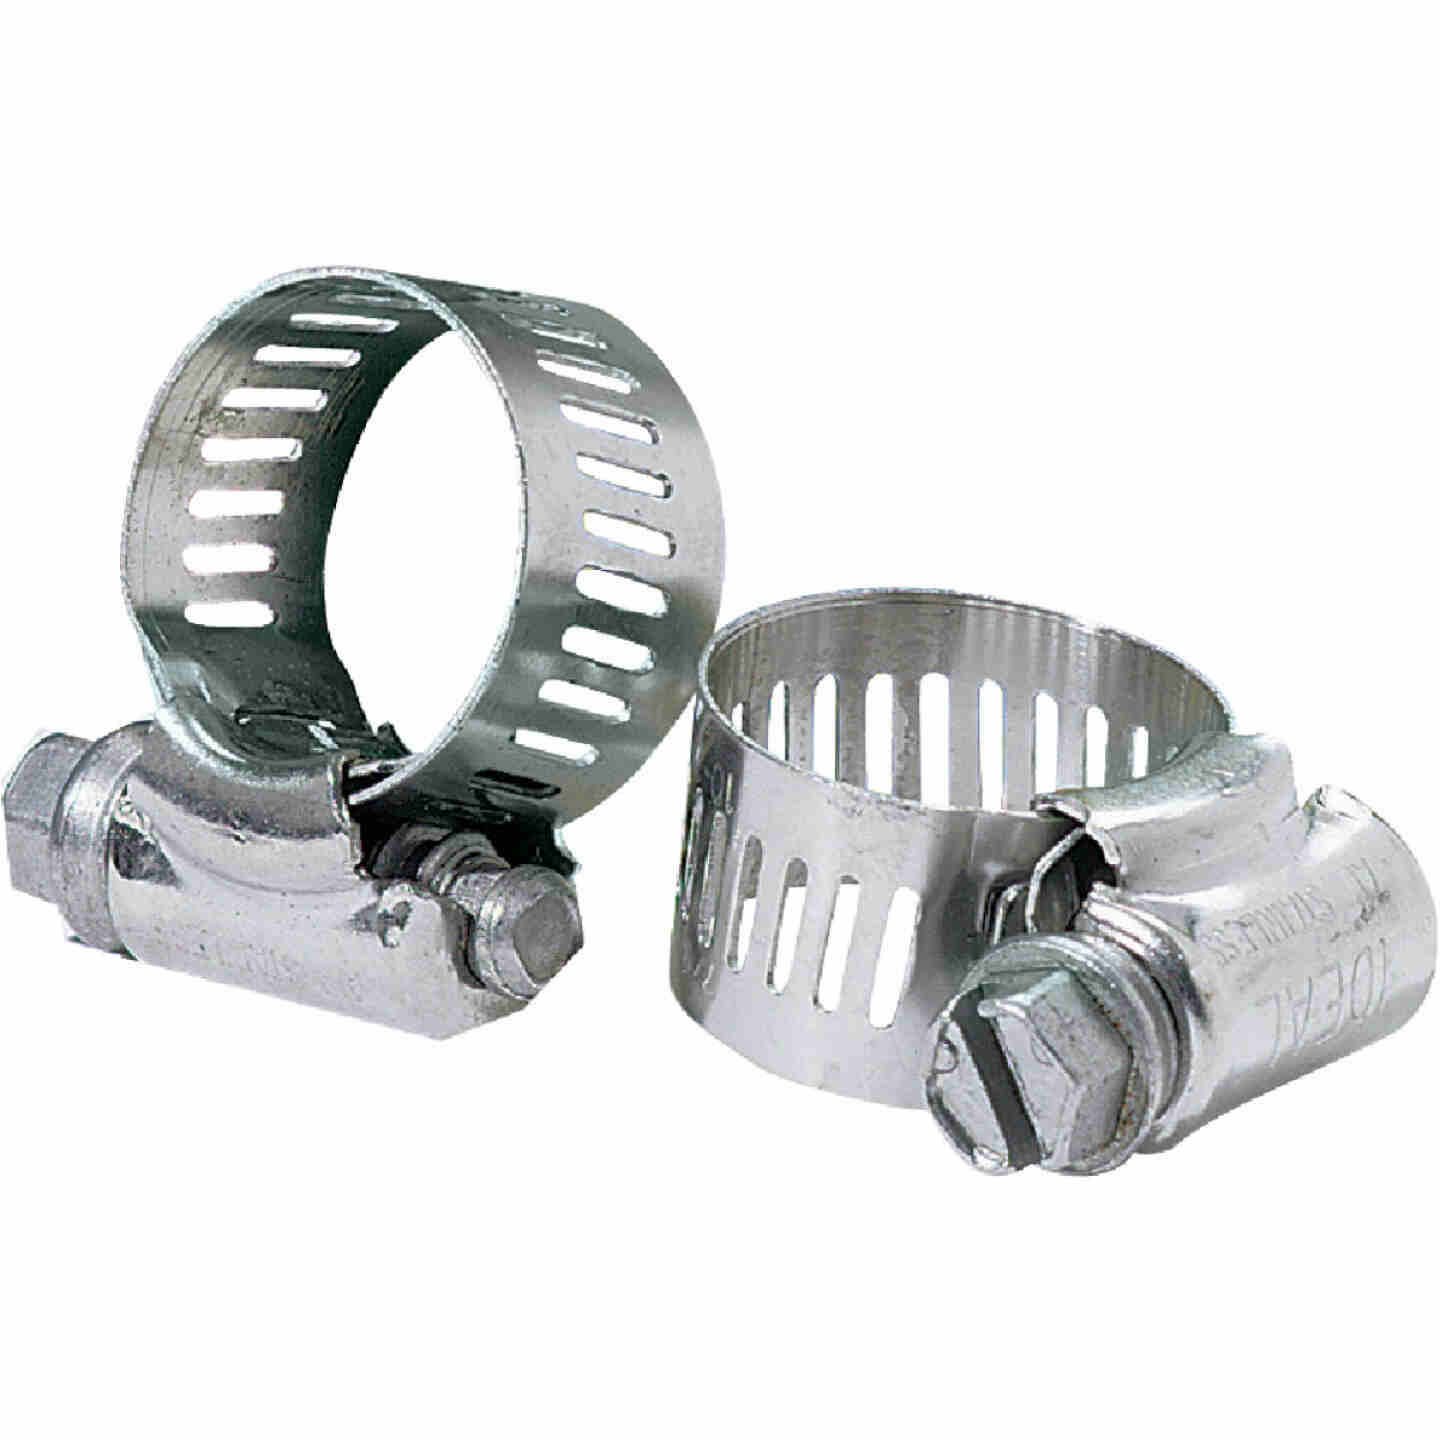 Ideal 3-1/2 In. - 5-1/2 In. 67 All Stainless Steel Hose Clamp Image 1